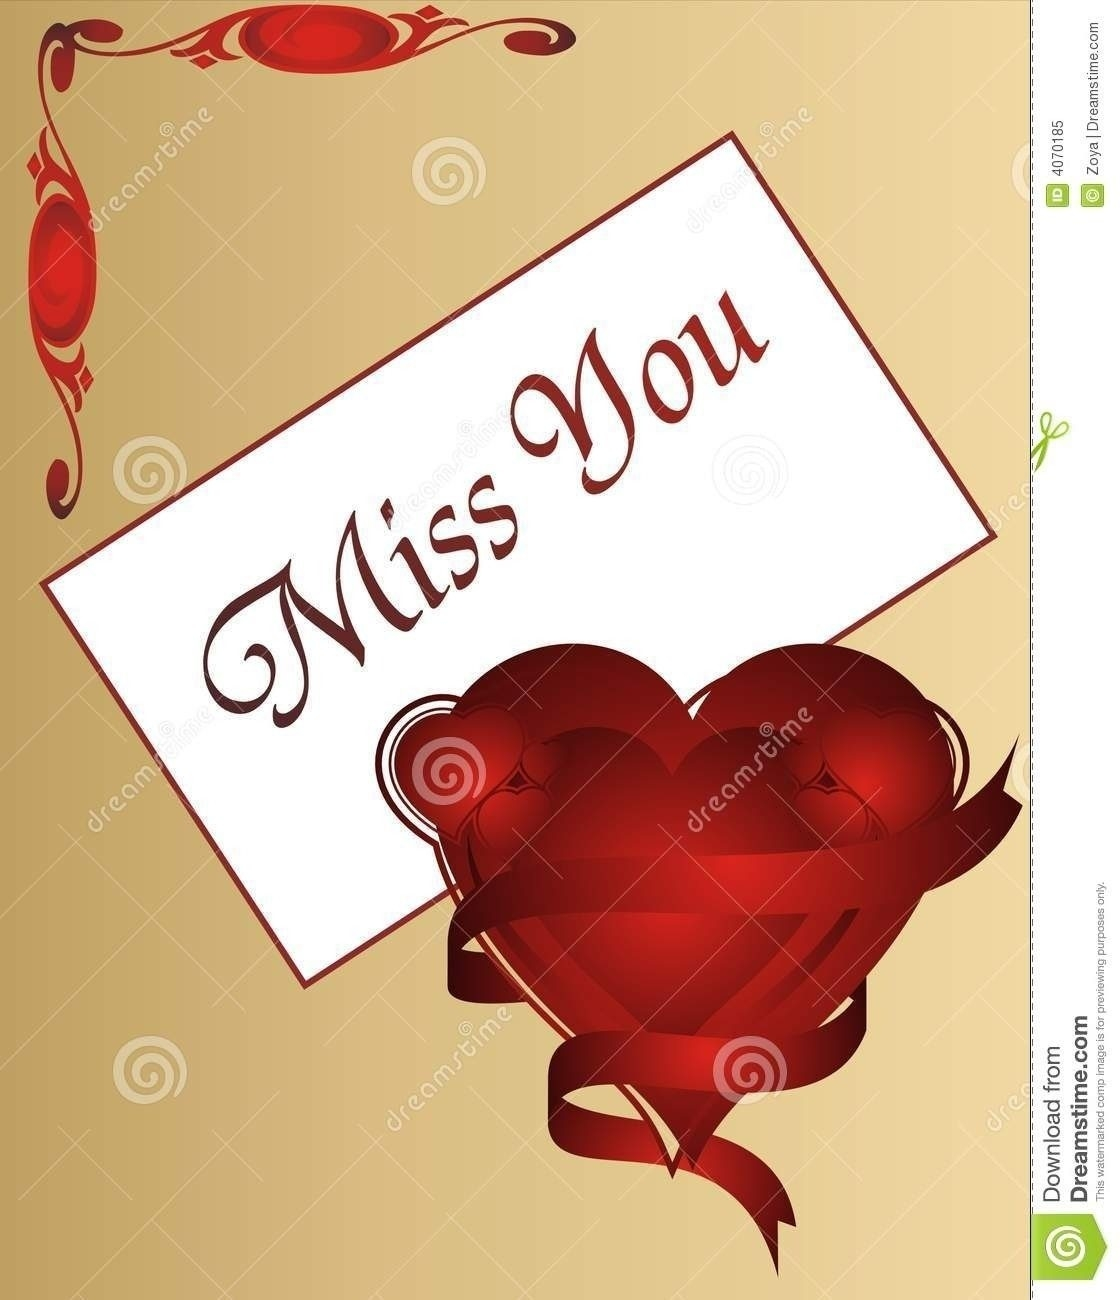 I Miss U Cards For Love | Postrendy with regard to I Miss U Cards For Love 30148